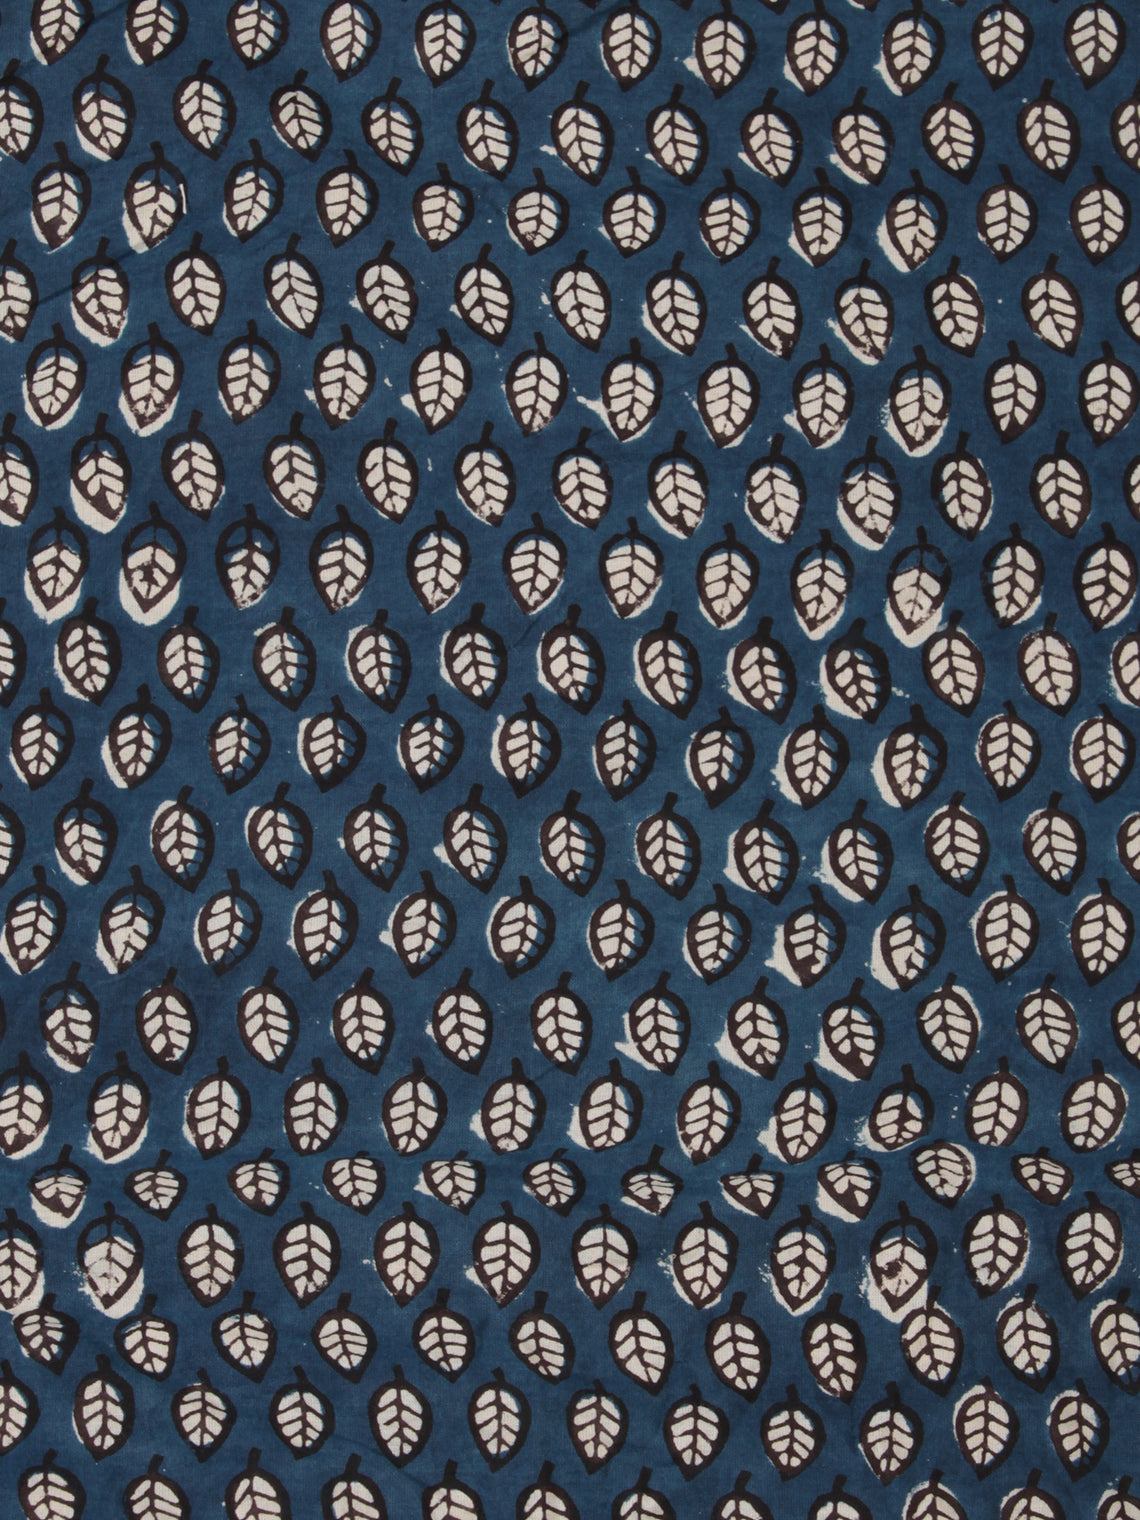 Indigo Black Hand Block Printed Cotton Fabric Per Meter - F001F2453